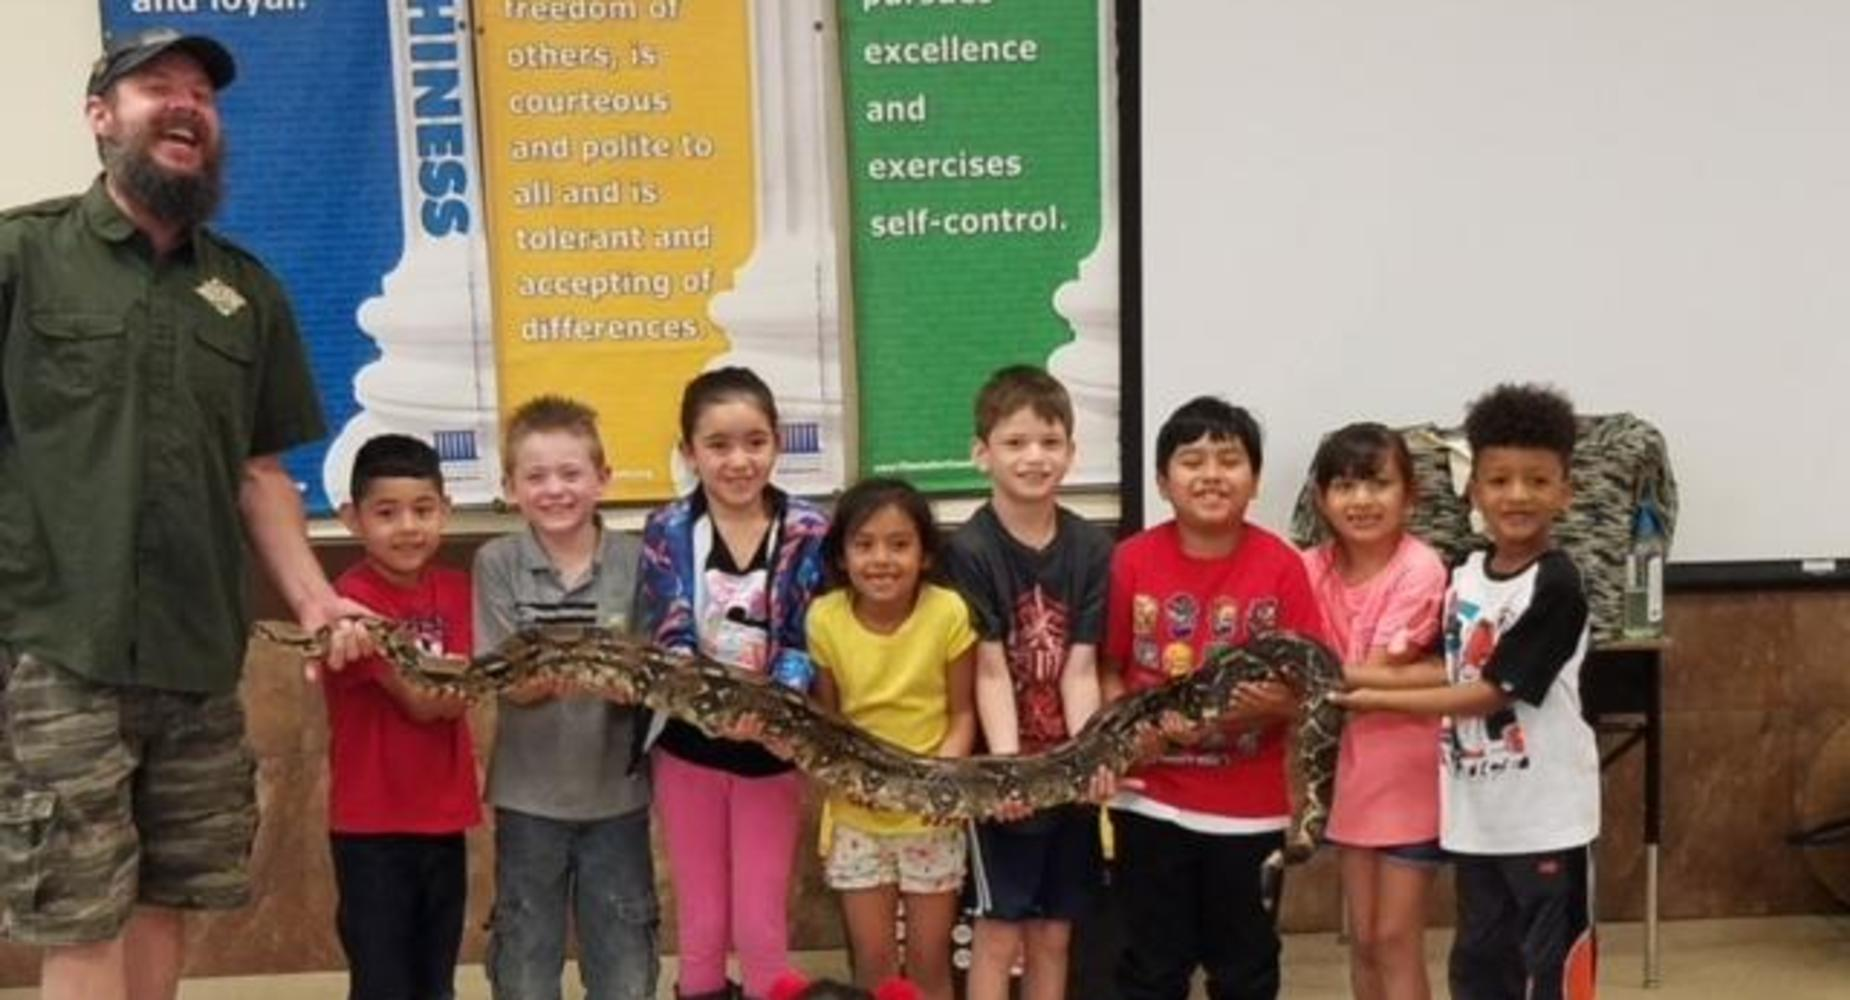 Cypress students holding a large snake at a school assembly with the help of a trained professional